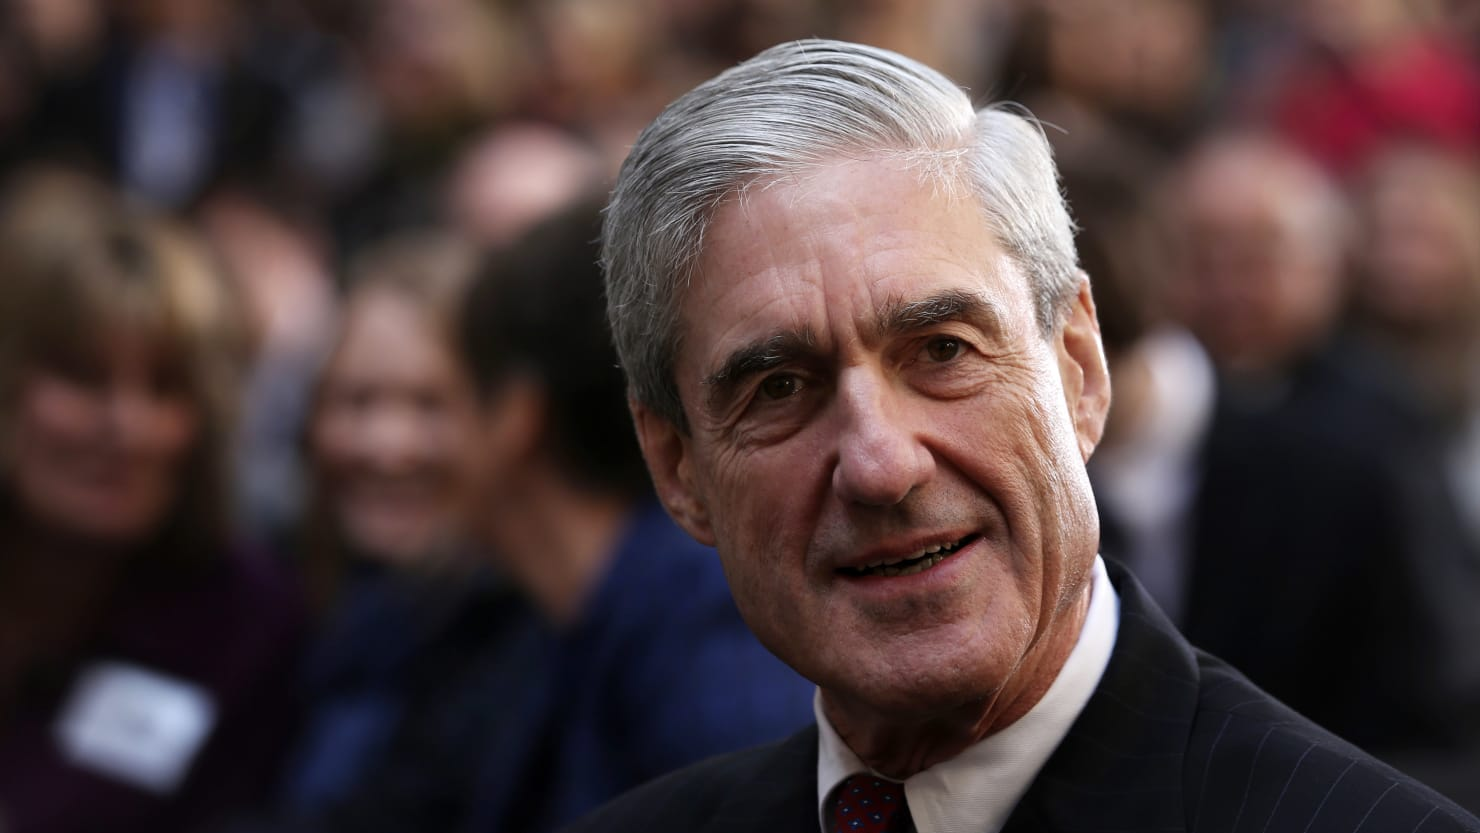 READ: Justice Department Publishes Redacted Mueller Report